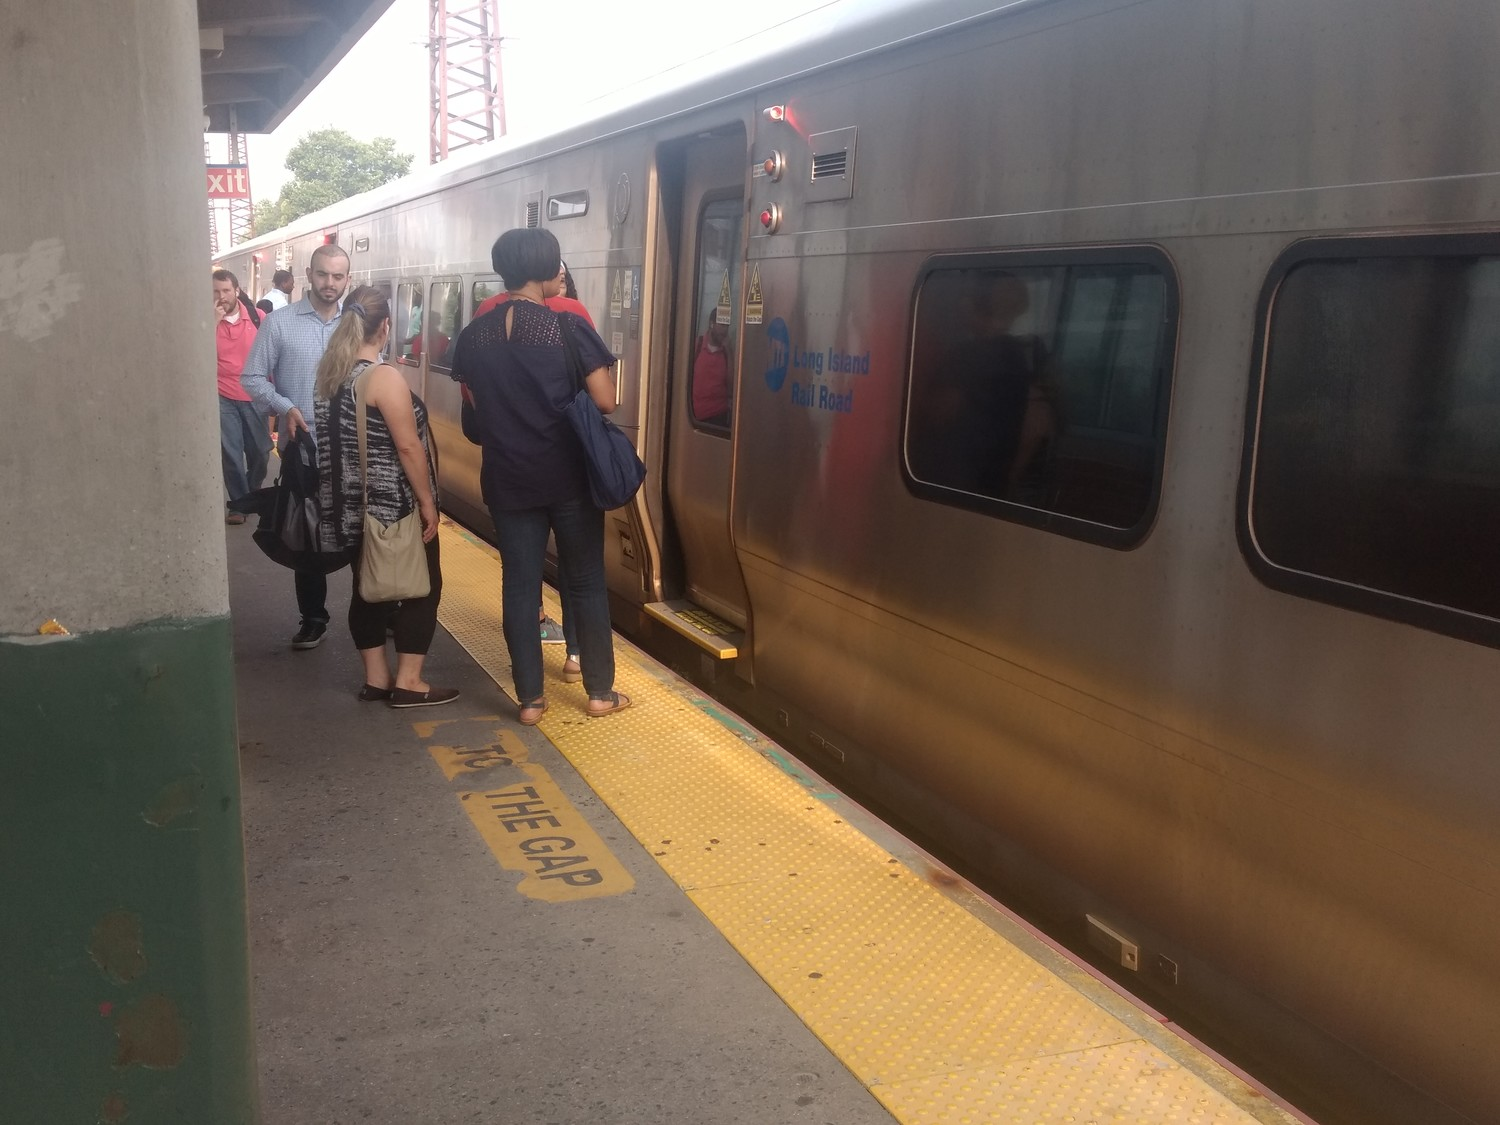 The MTA board voted to hike the price of weekly and monthly LIRR tickets.